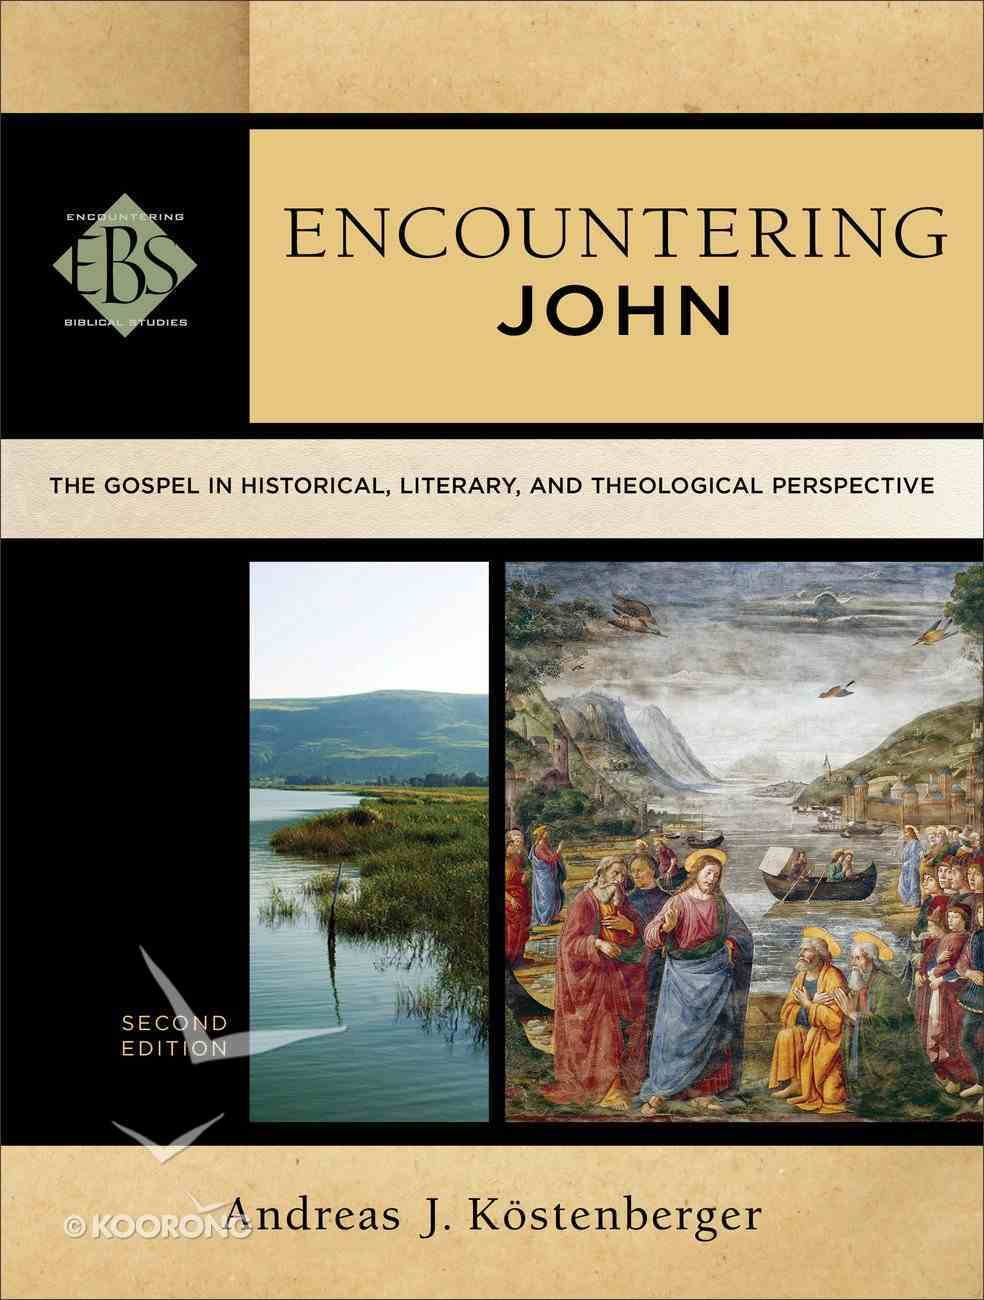 Encountering John : The Gospel in Historical, Literary, and Theological Perspective (2nd Edition) (Encountering Biblical Studies Series) Paperback